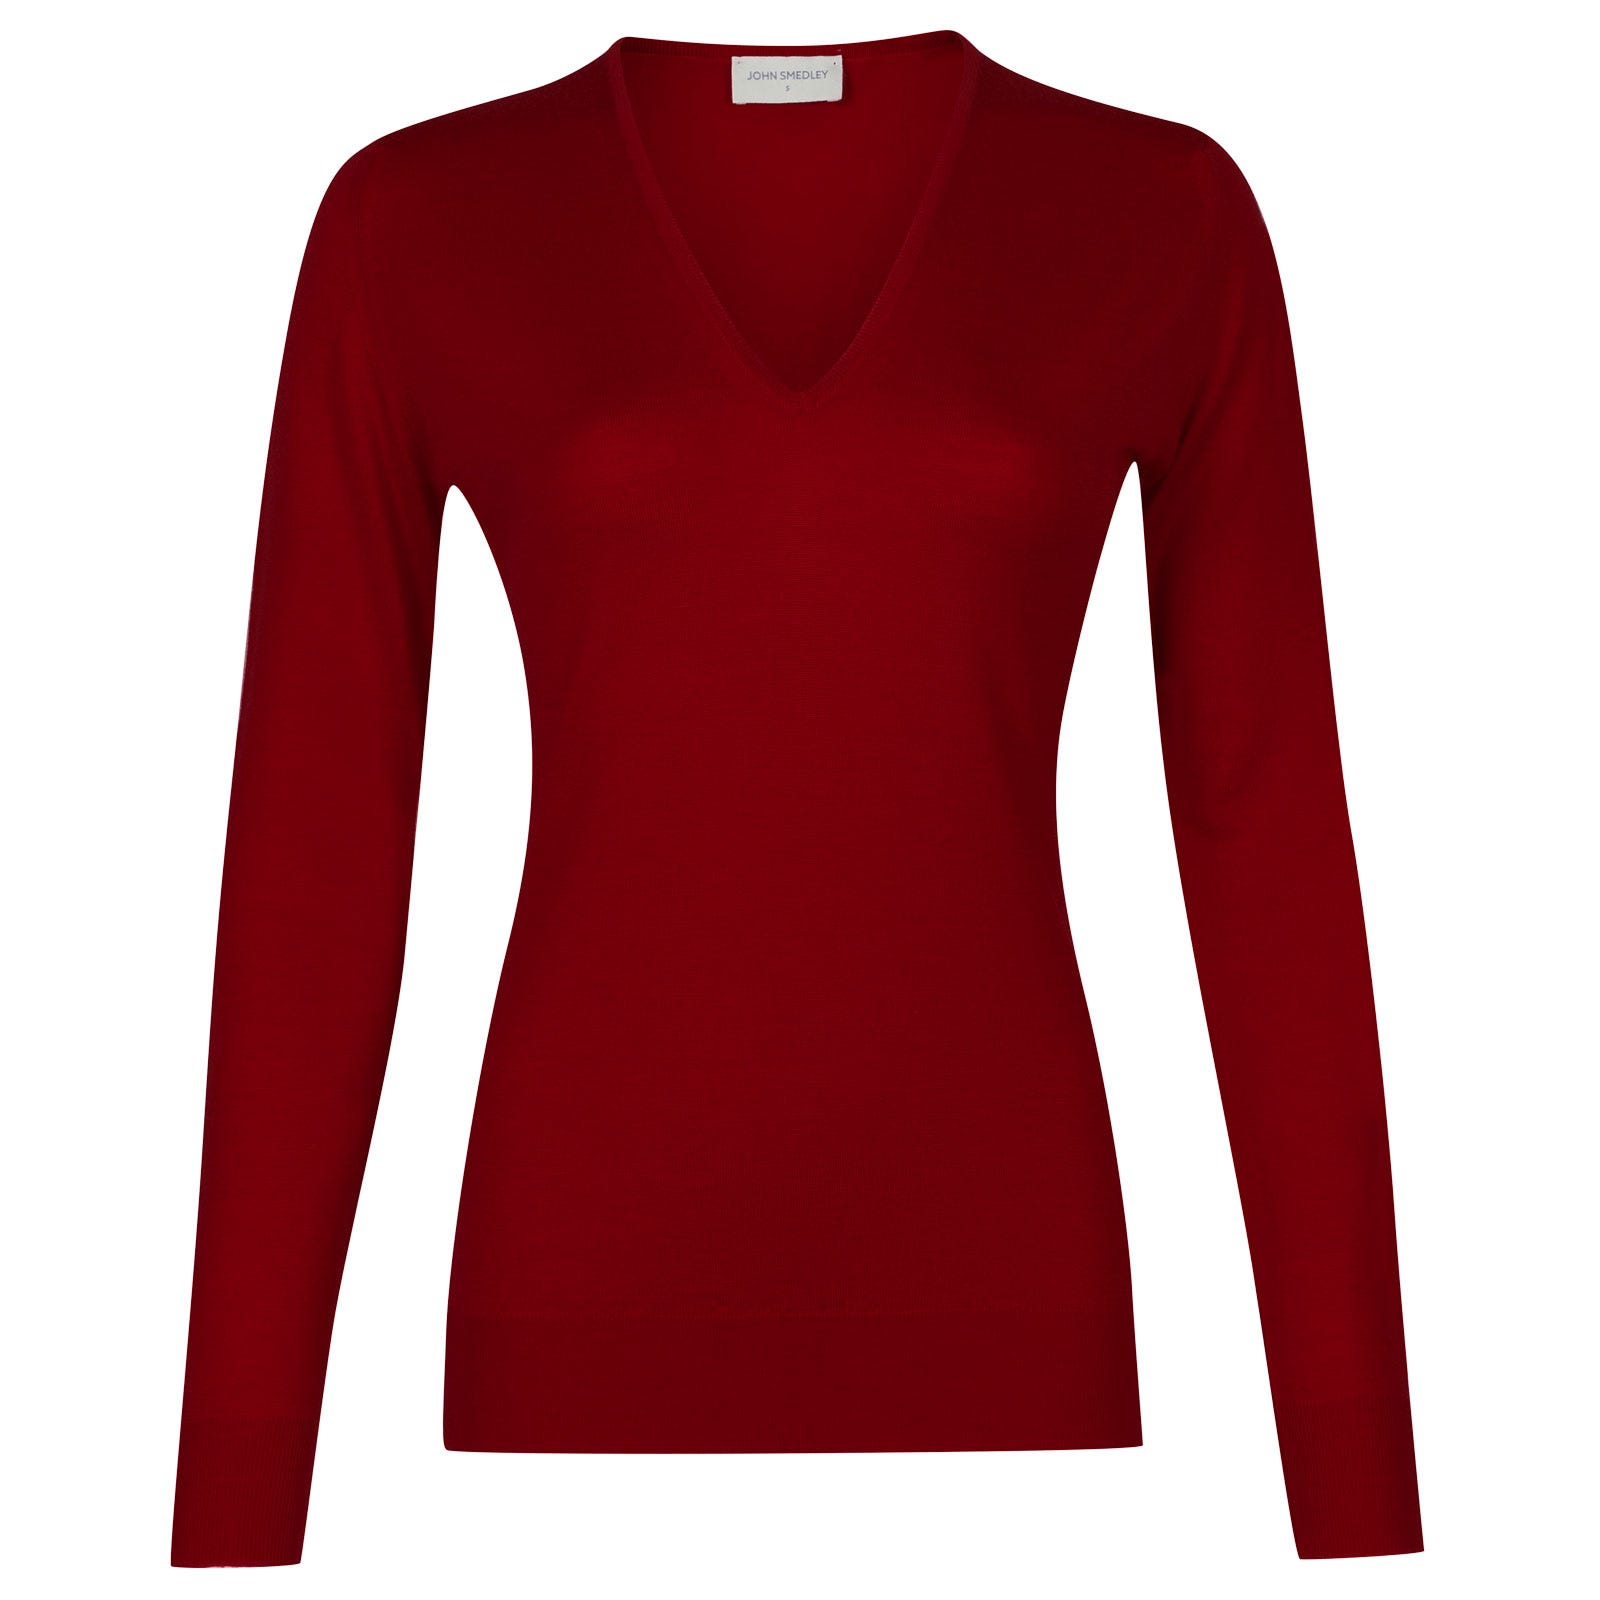 John Smedley orchid Merino Wool Sweater in Crimson Forest-S